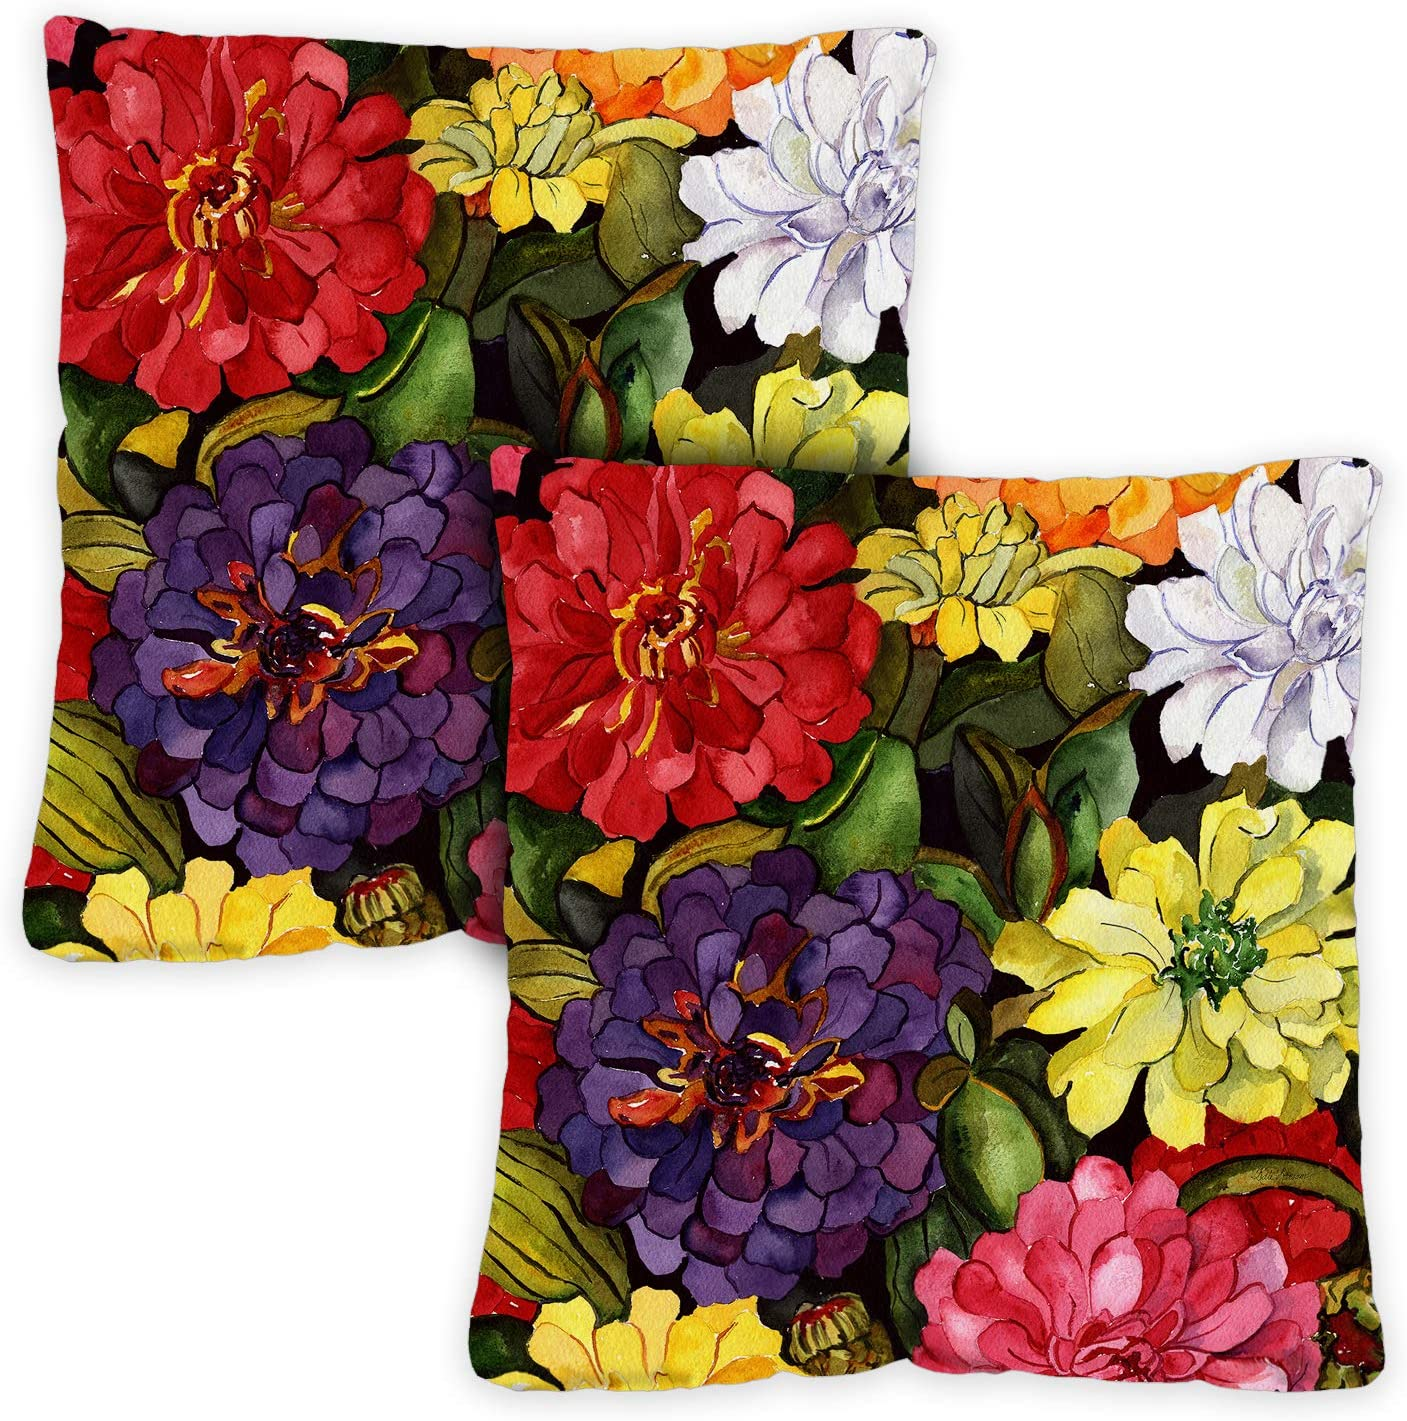 Toland Home Garden 721214 Zippy Zinnias 18 x 18 Inch Indoor Outdoor, Pillow, Insert 2-Pack